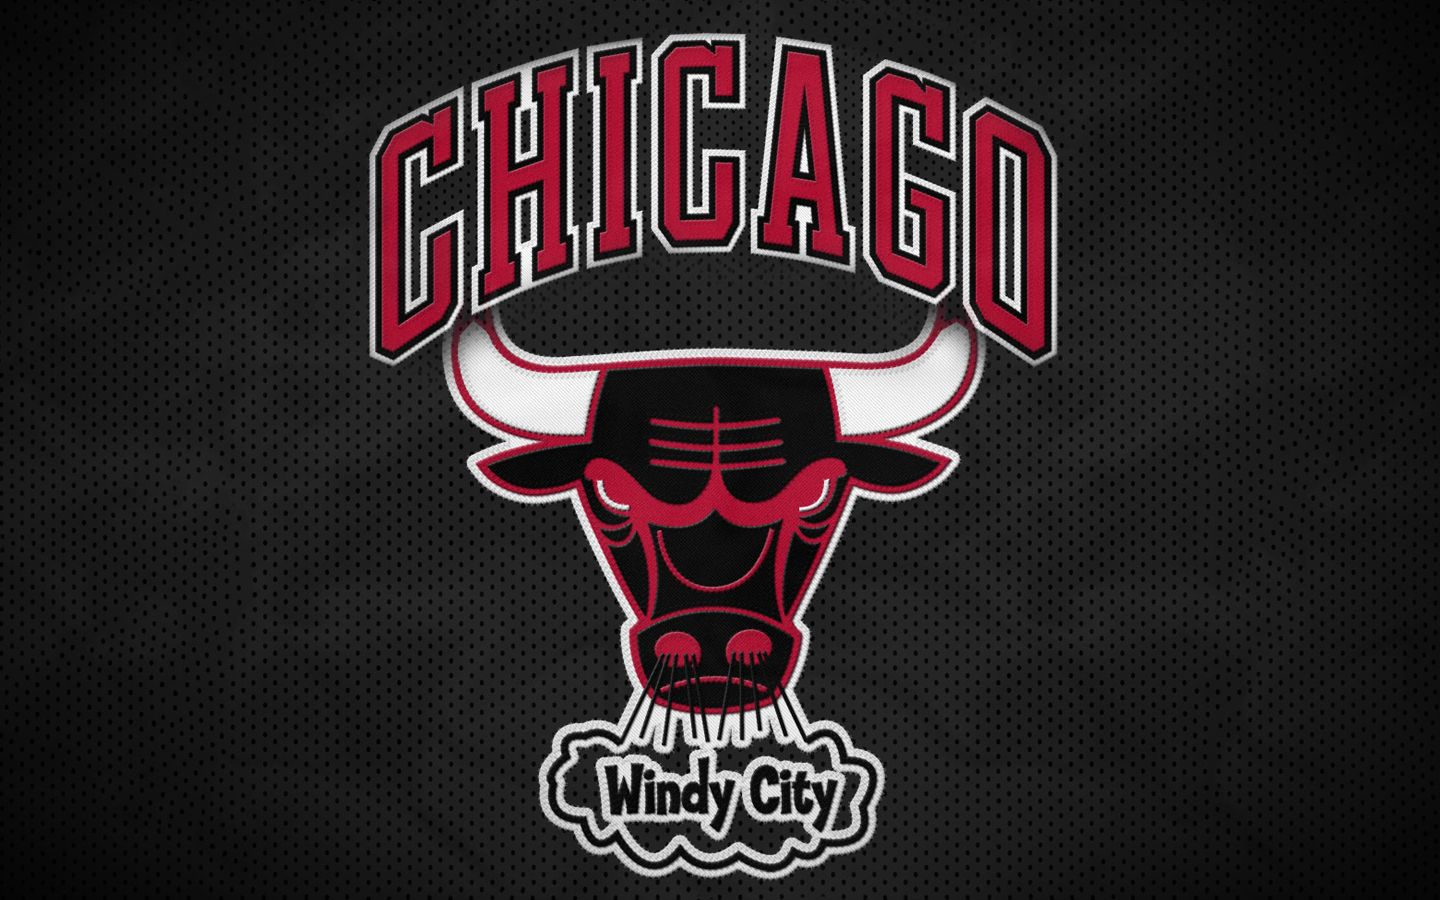 Collection of Chicago Bulls Wallpaper on HDWallpapers